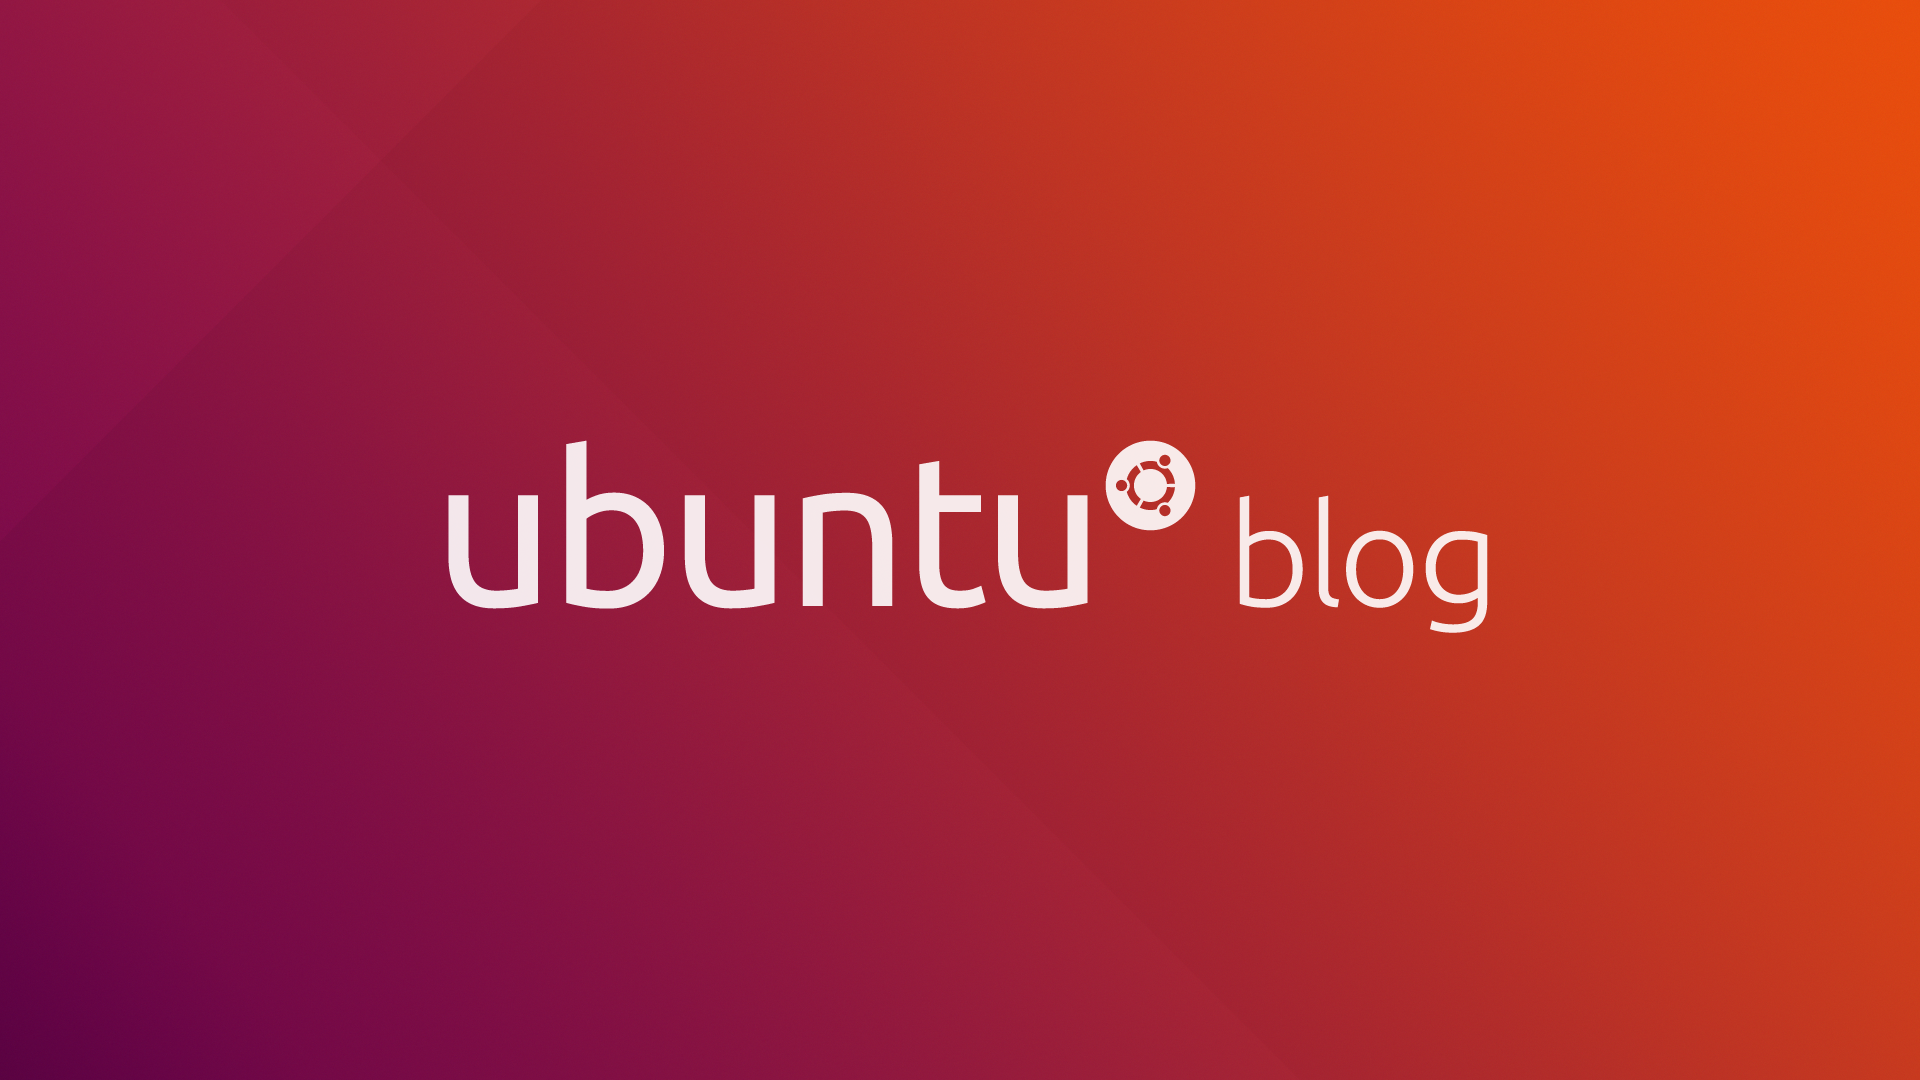 ubuntu.com - Get productive on the Linux desktop with 7 essential apps